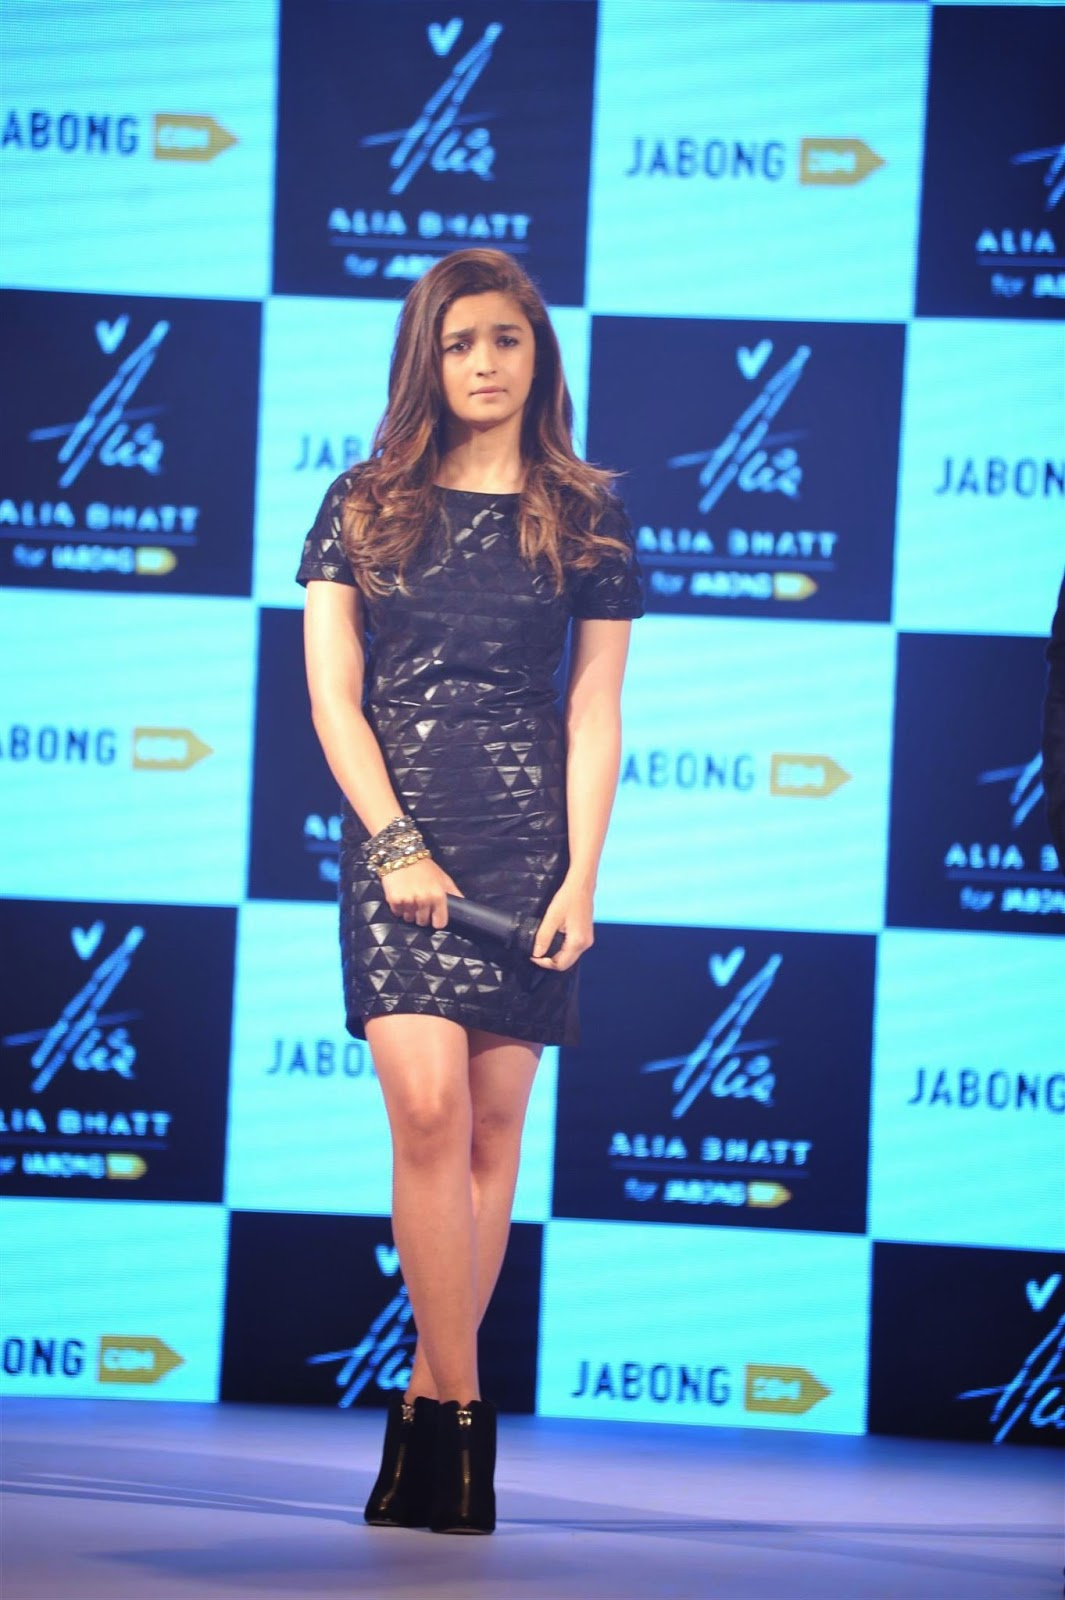 Alia Bhatt Unveiled The 'Alia Bhatt for Jabong' Collection